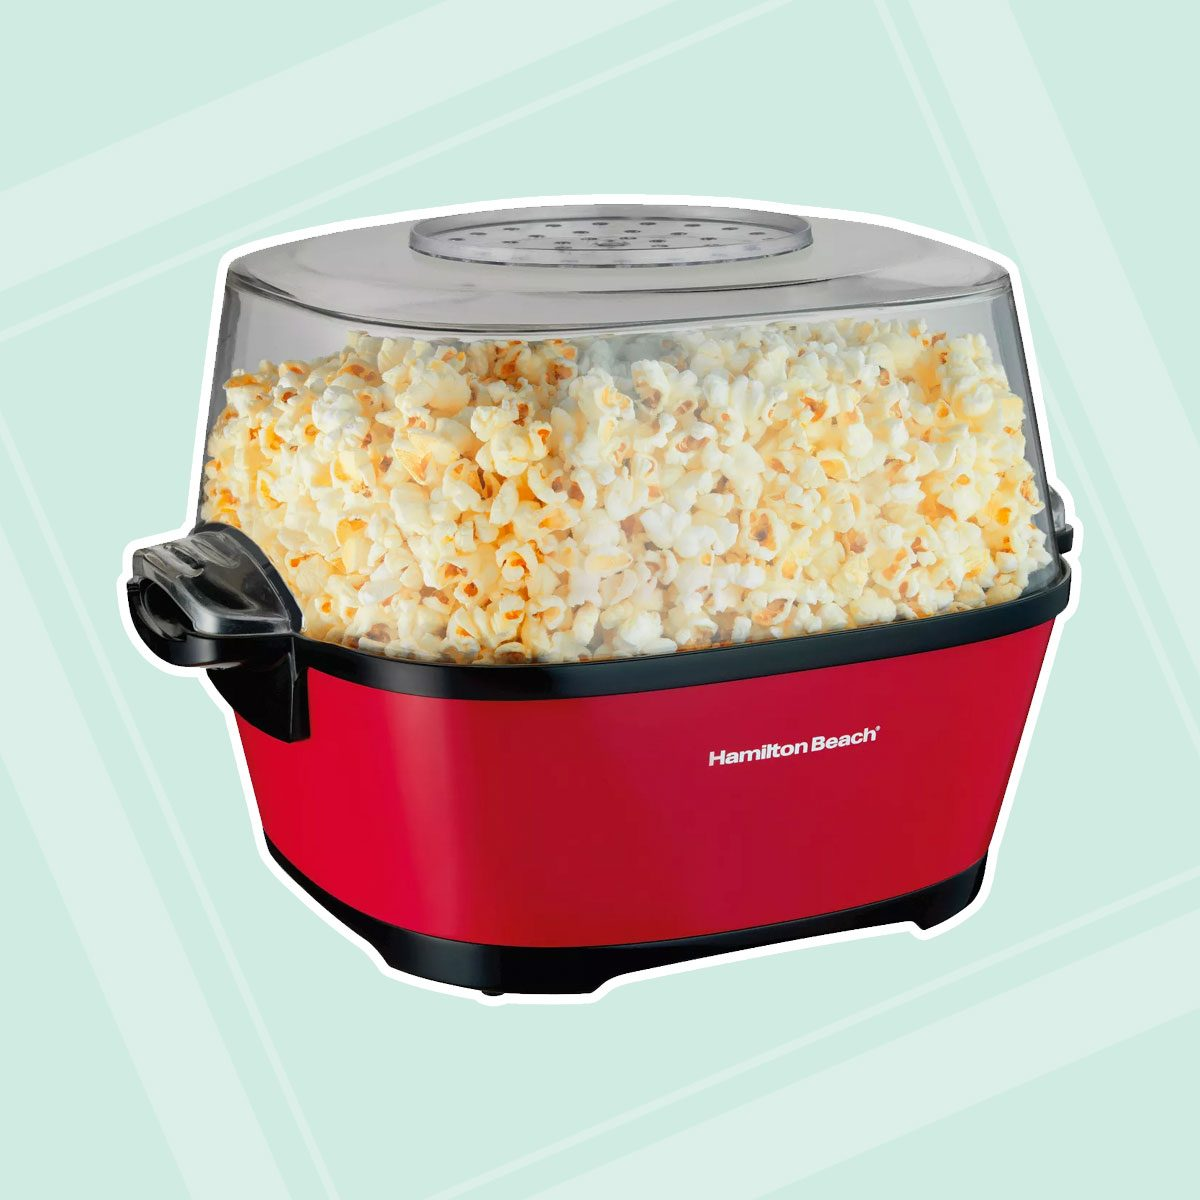 Hamilton Beach Electric Popcorn Maker